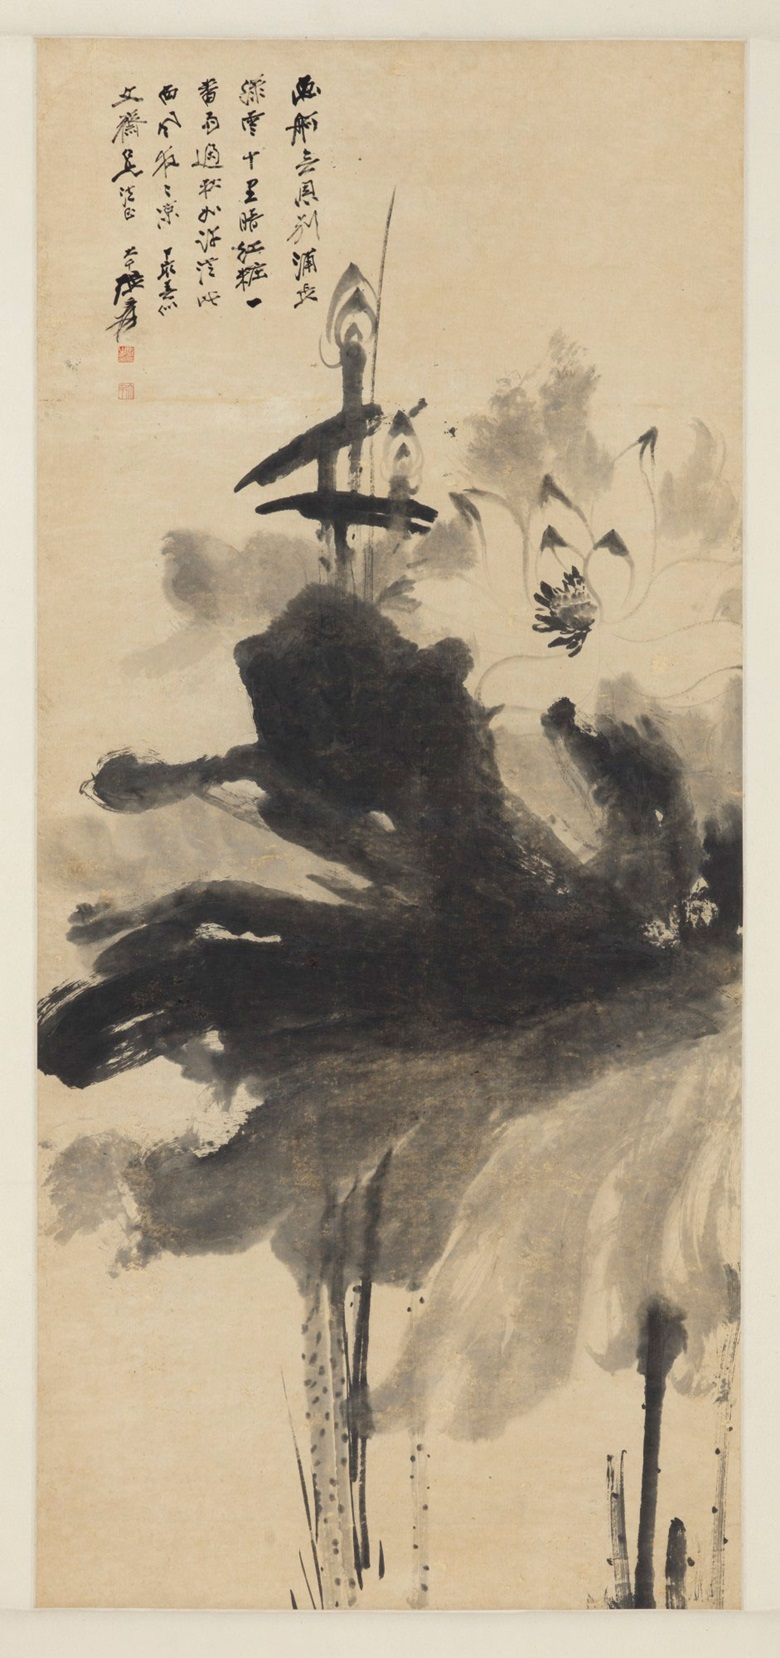 Zhang Daqian (1899-1983), Ink Lotus, 1947. Hanging scroll, ink and colour on paper. 56 x 25⅝ in (142 x 65 cm). Estimate $50,000-70,000. Offered in Fine Chinese Paintings on 11 September at Christie's in New York